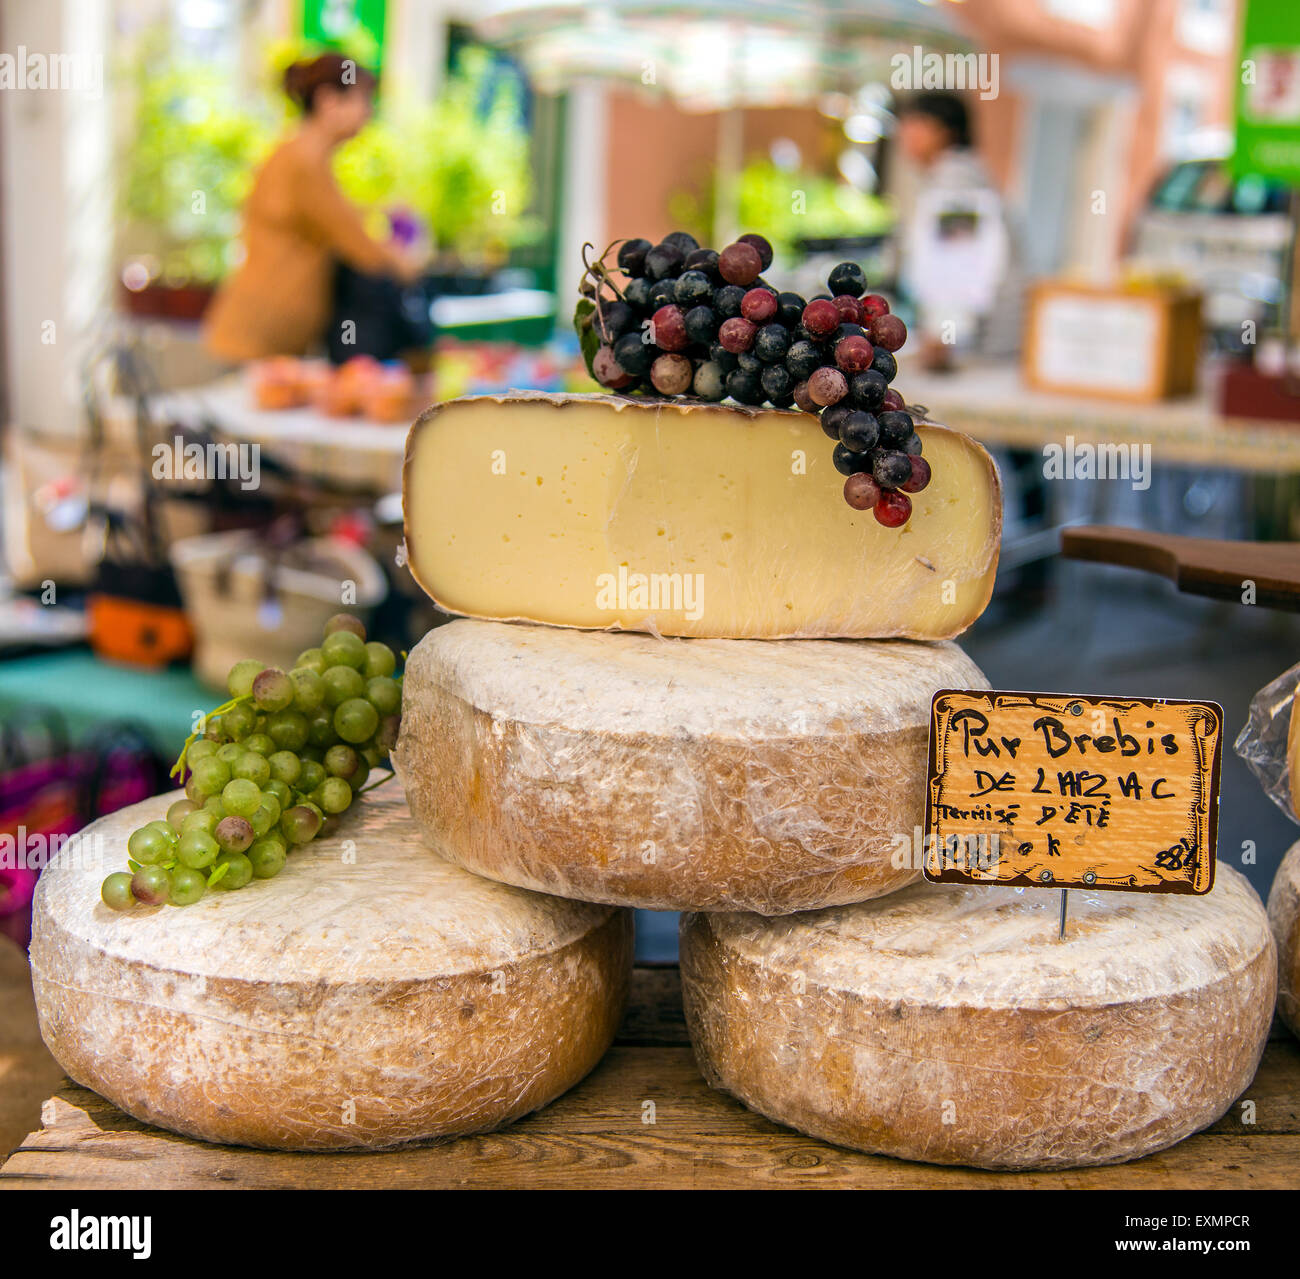 Local cheeses on sale at the market, Saint-Remy-de-Provence, Provence, France - Stock Image